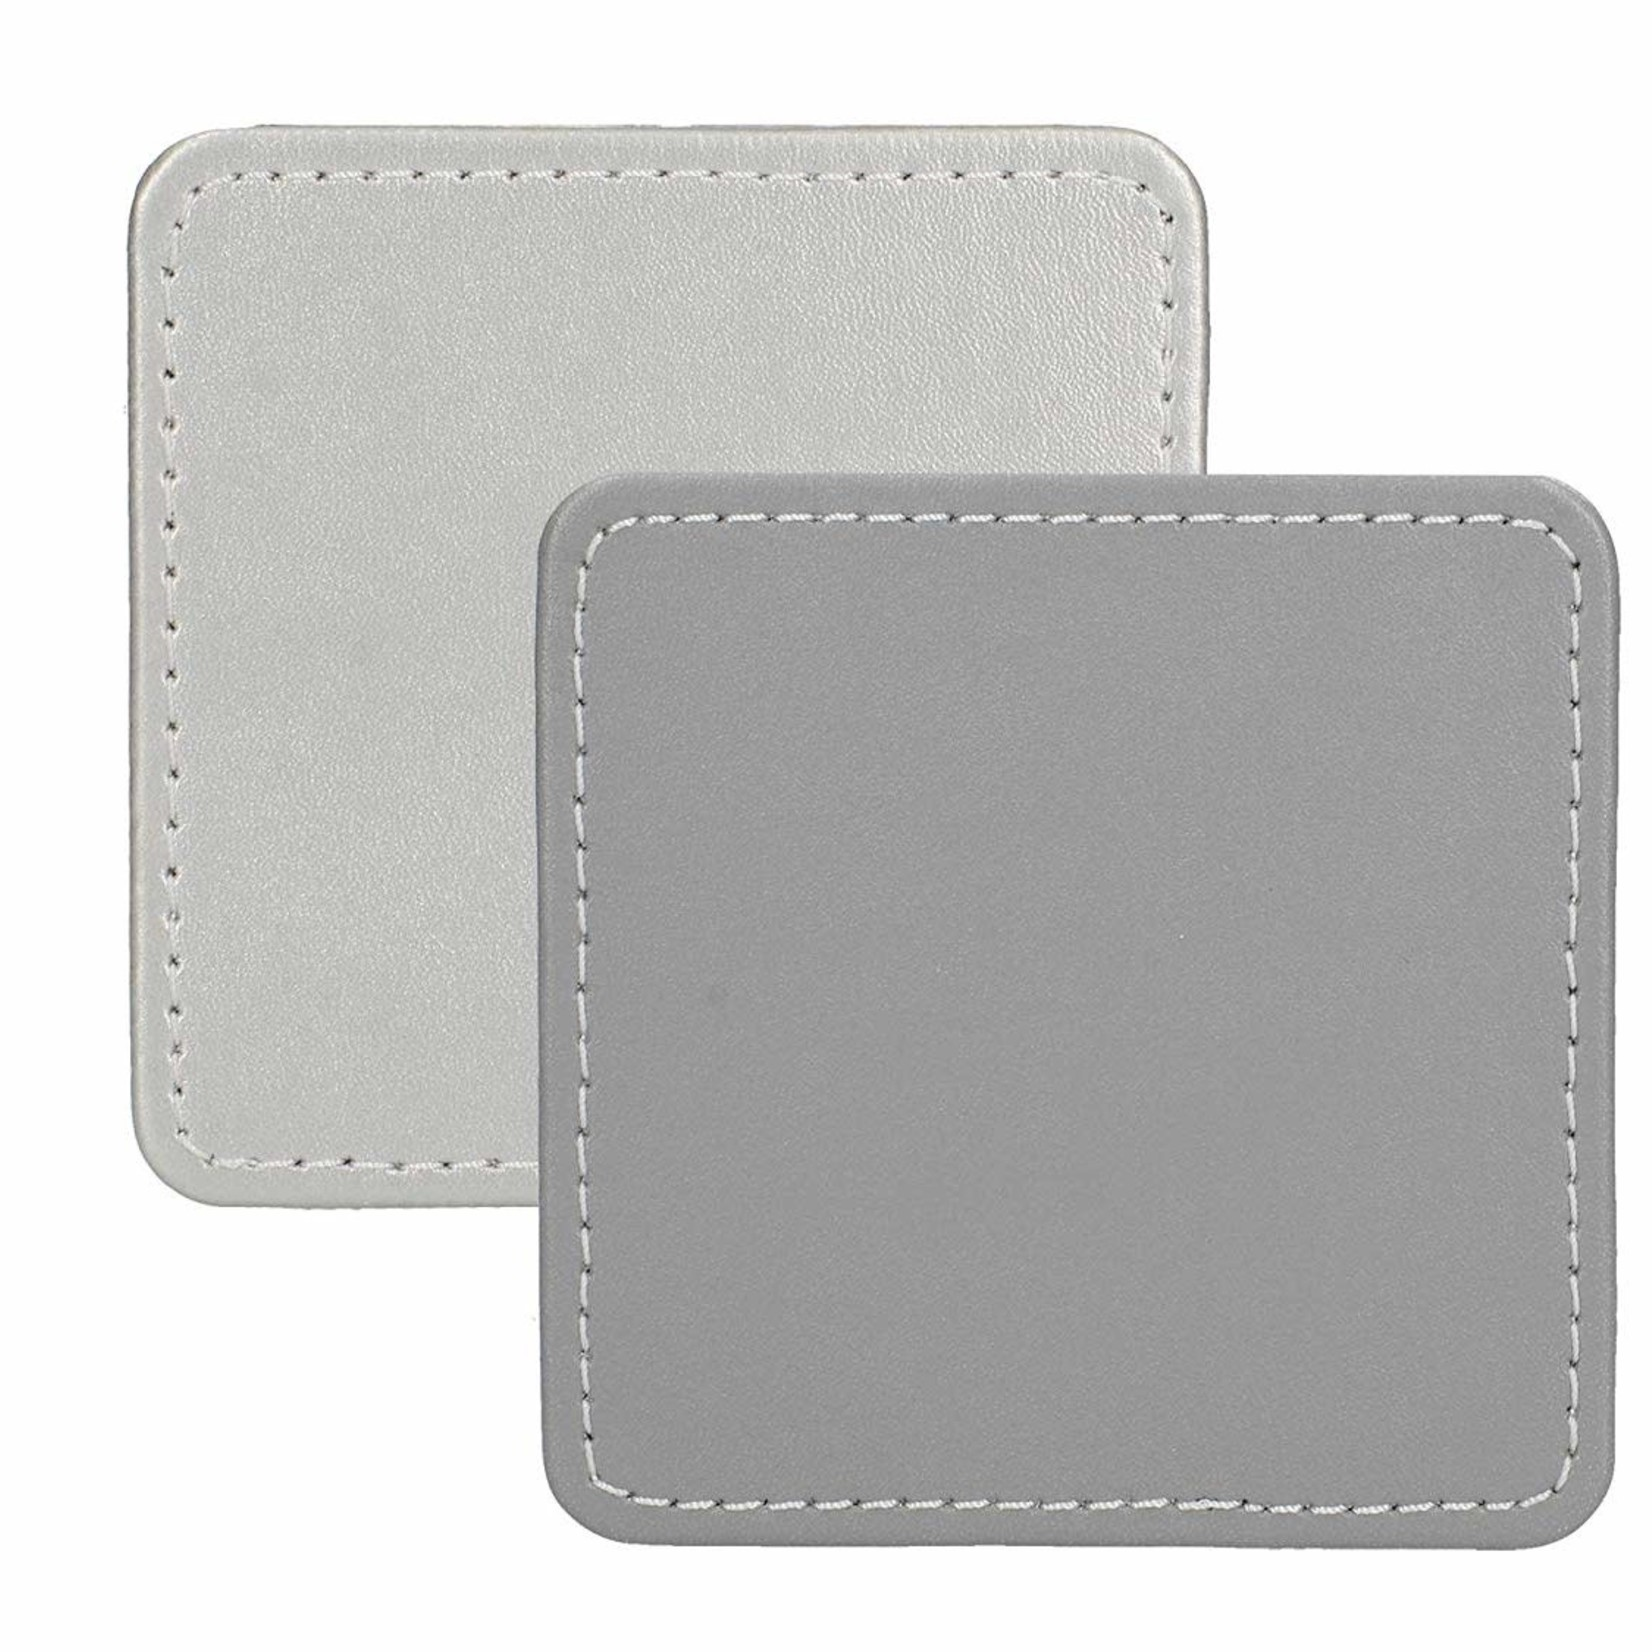 Kitchen Craft CREATIVE TOPS PREMIUM FAUX LEATHER PACK 4 COASTERS METALLIC SILVER